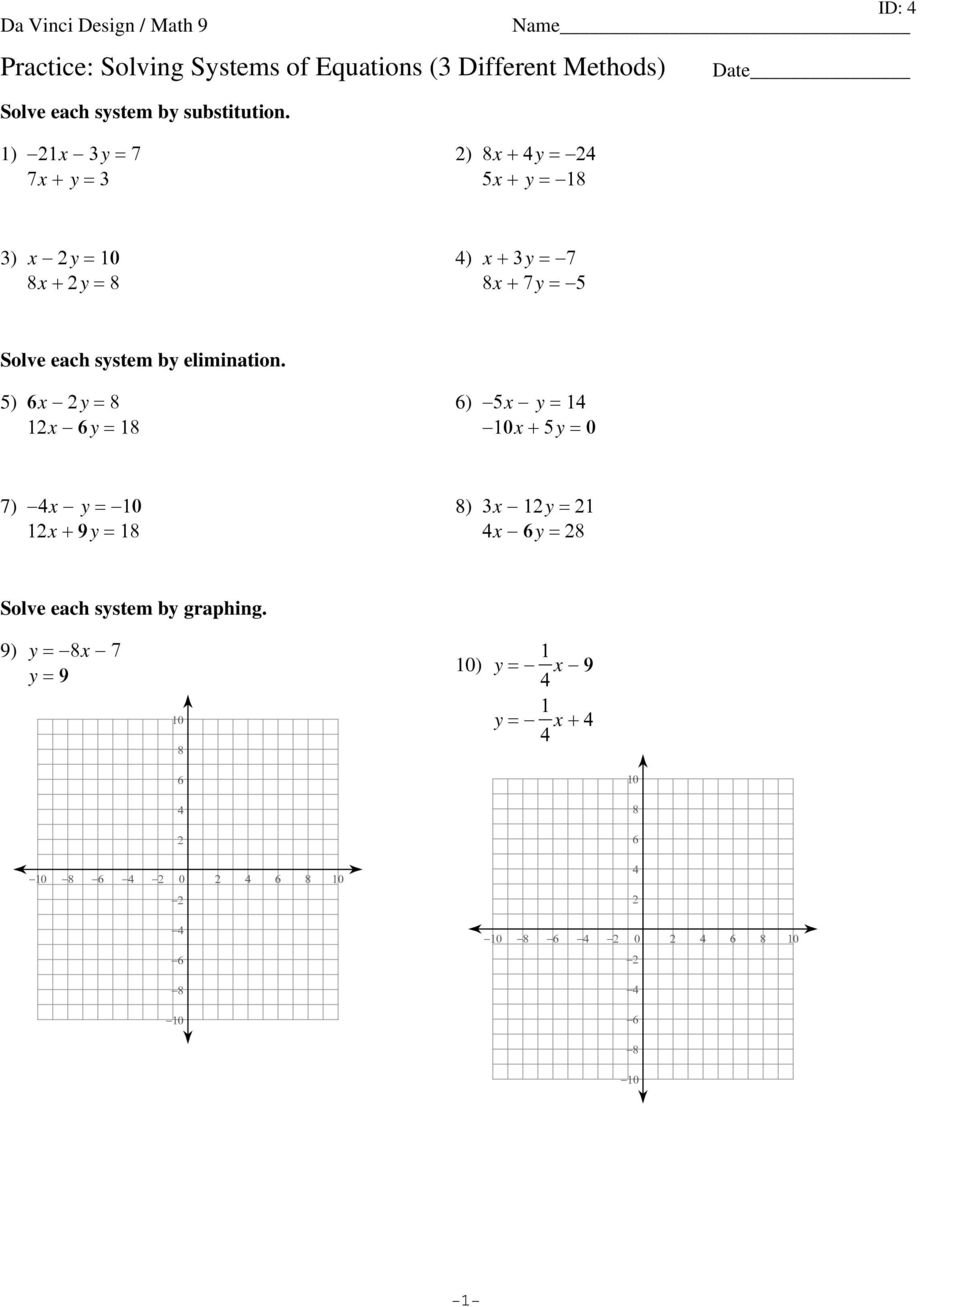 Solving Linear Equations With Fractions Practice Tessshebaylo – Solving Systems of Linear Equations by Graphing Worksheet